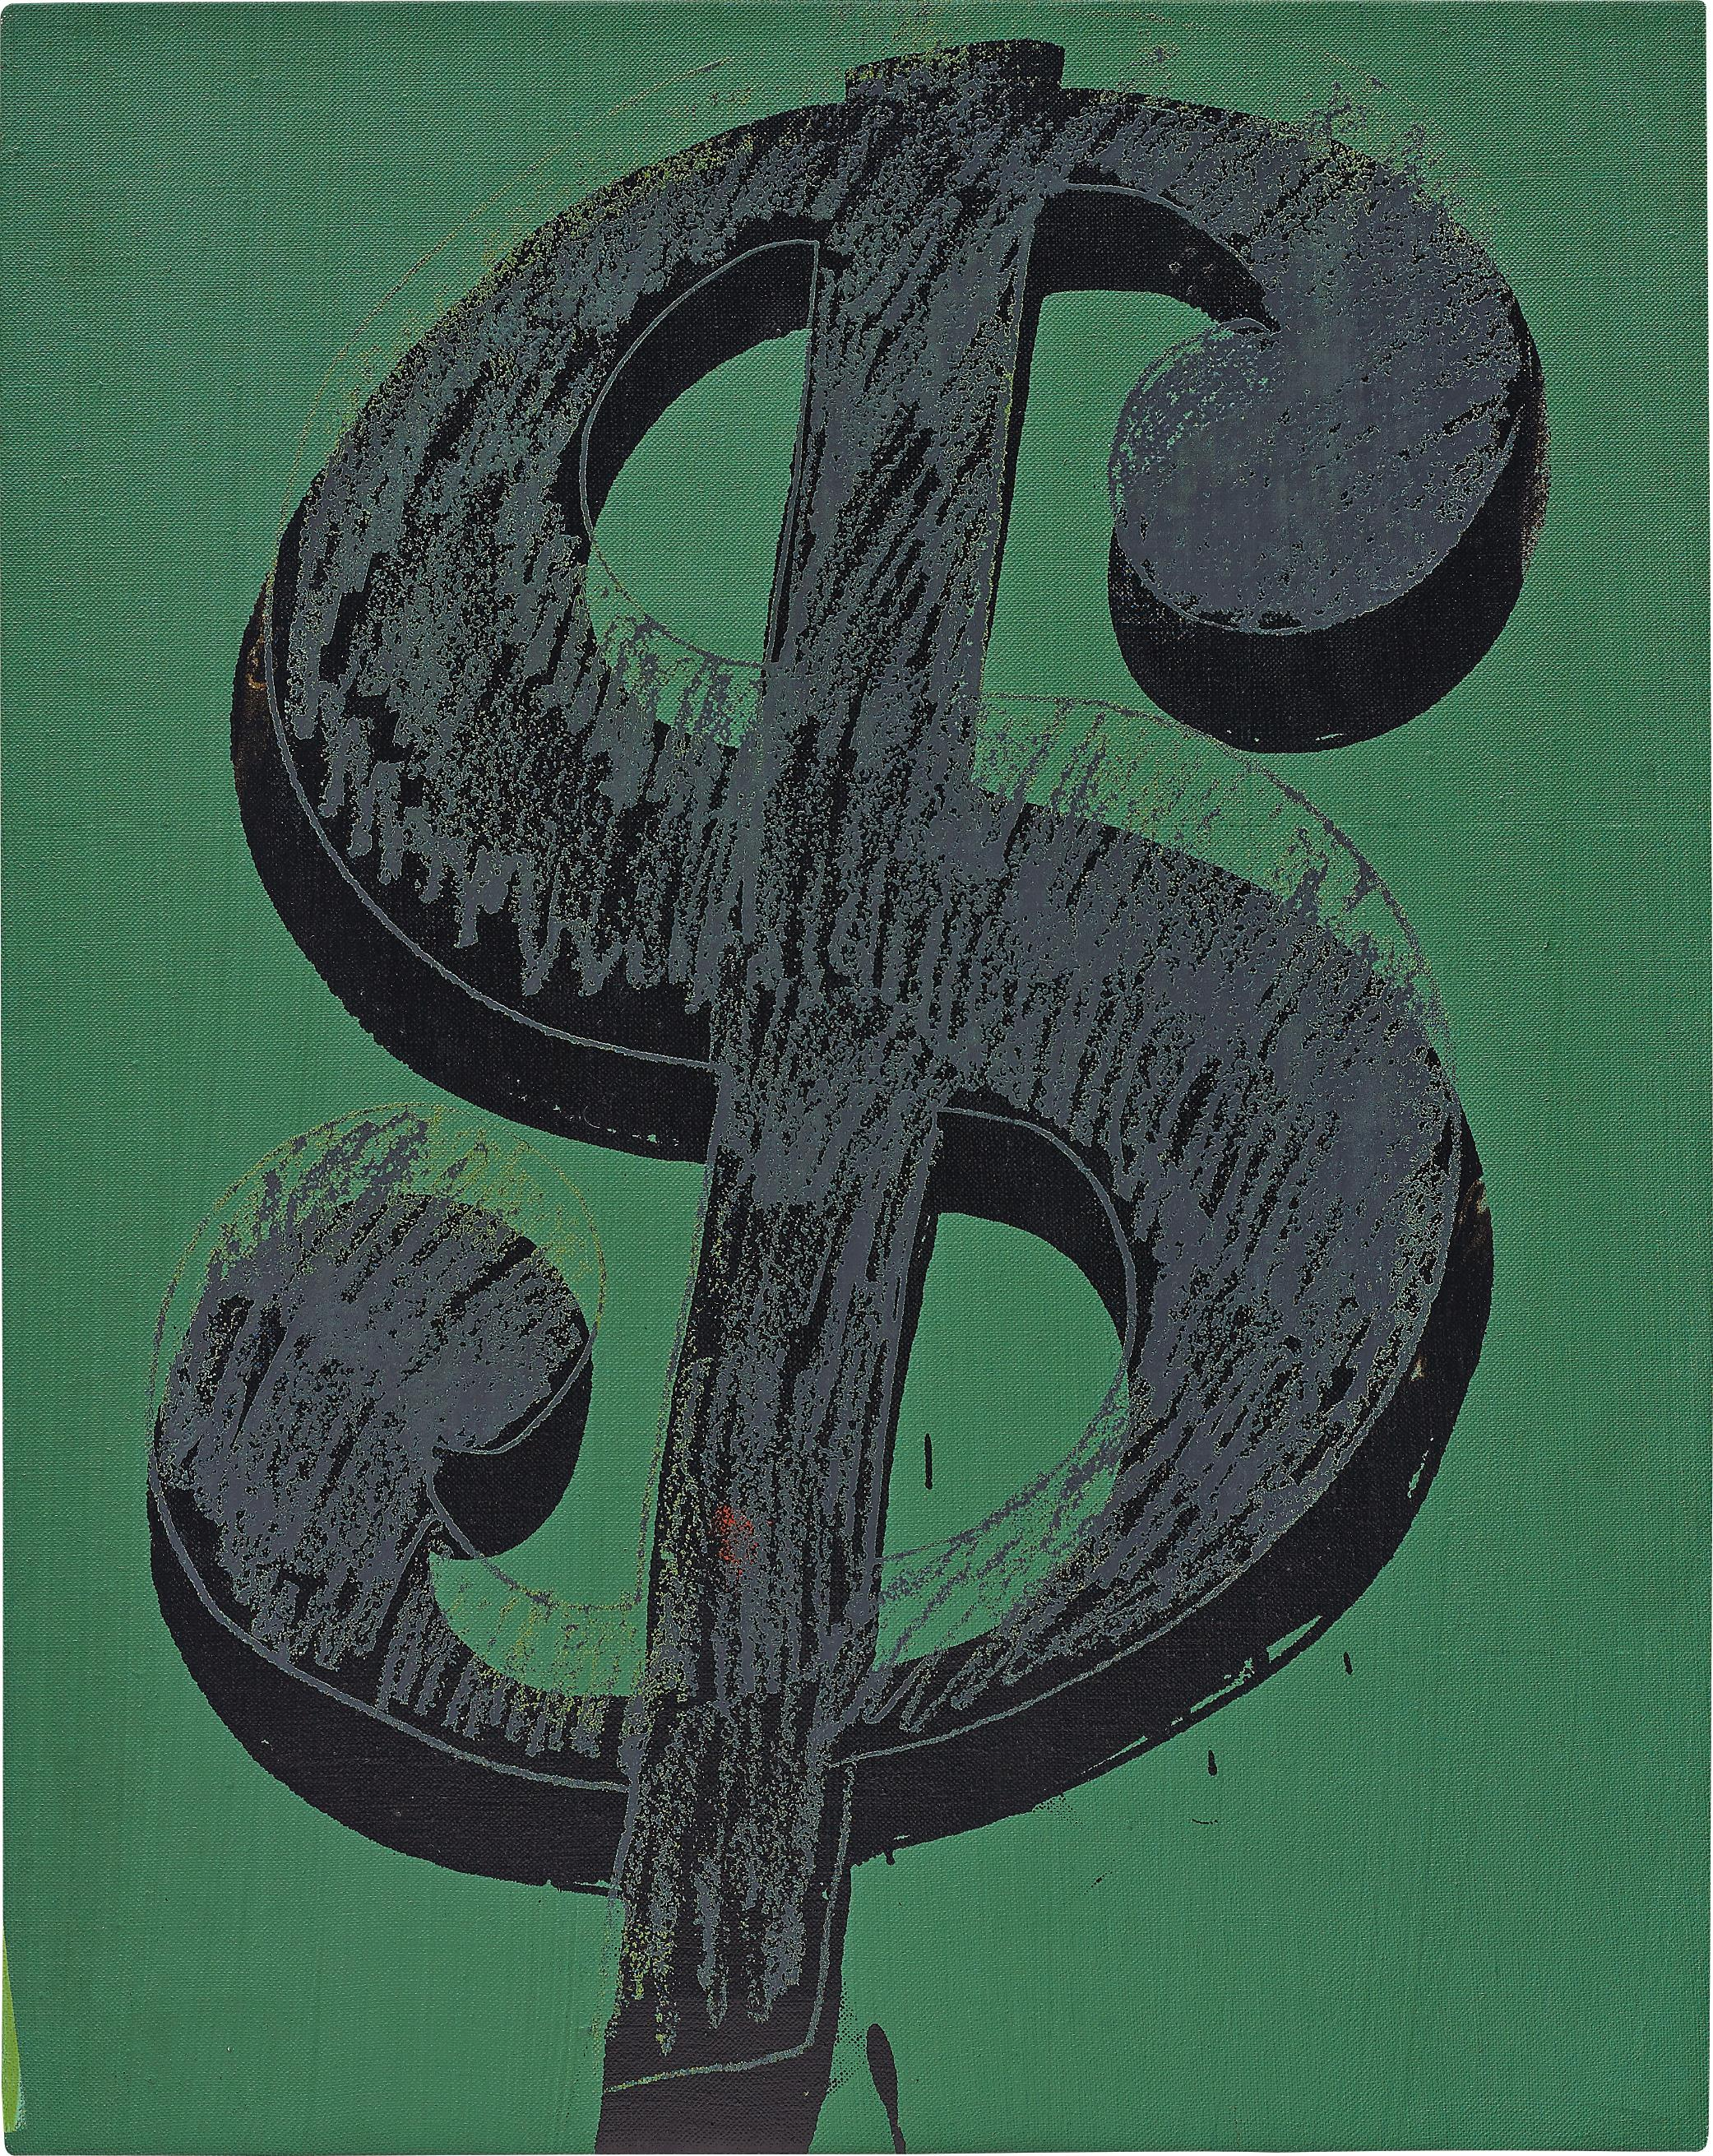 Andy Warhol-Dollar Sign-1981